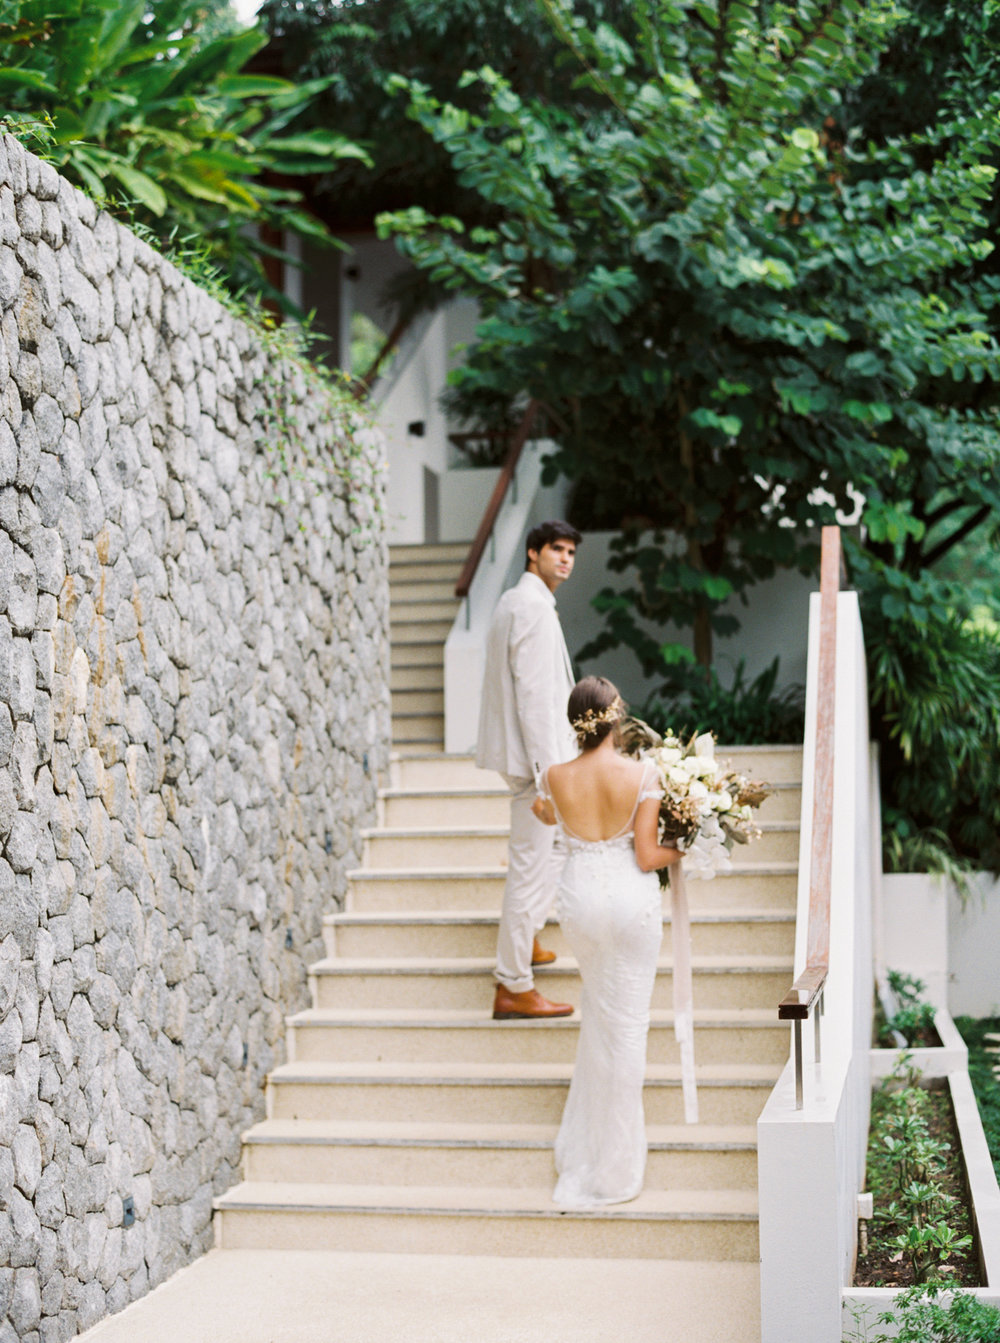 Bride and groom in Phuket for a luxury wedding